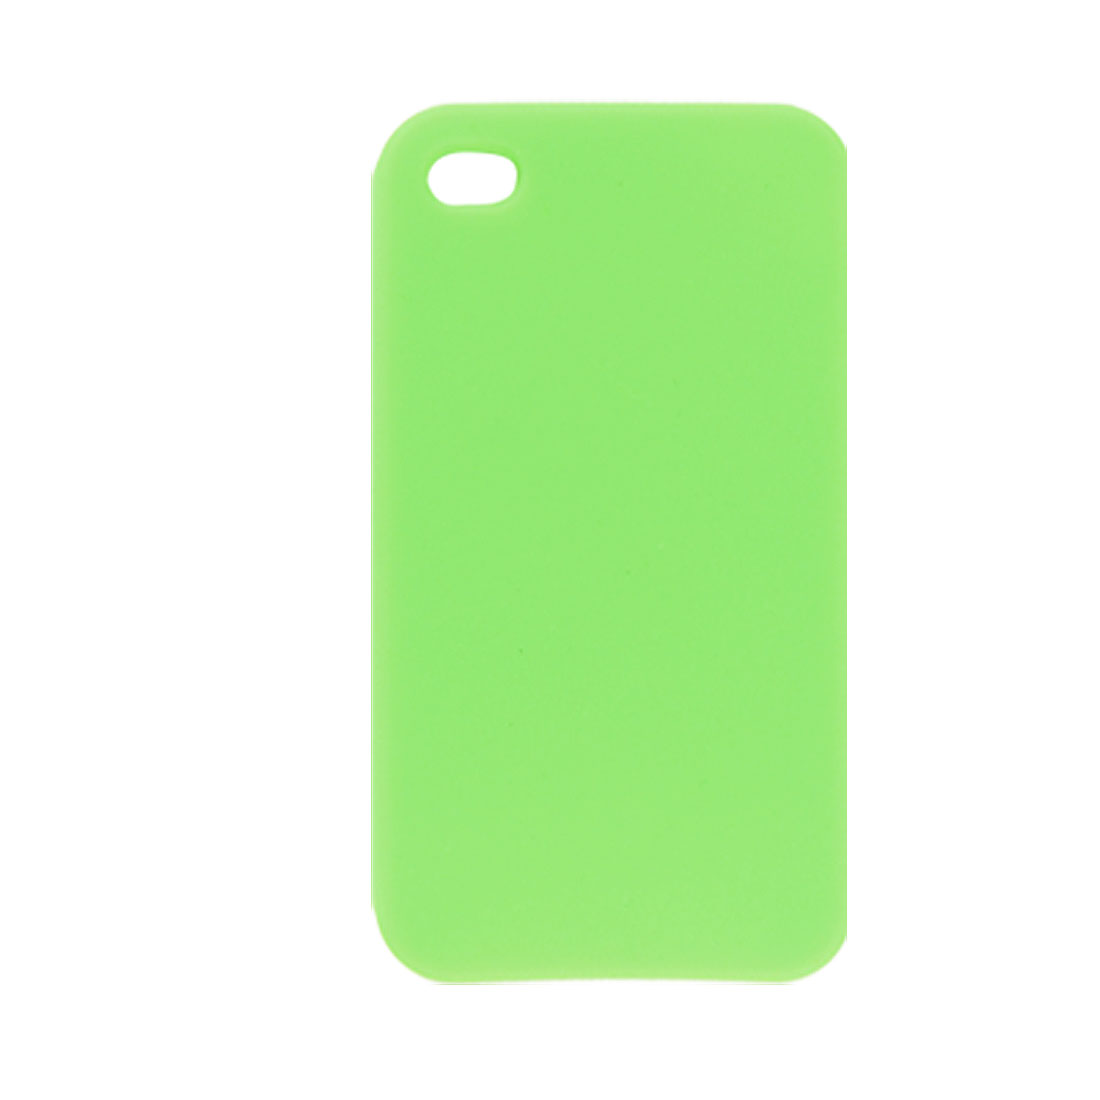 Grass Green Silicone Skin Case Cover for Apple iPhone 4 4G